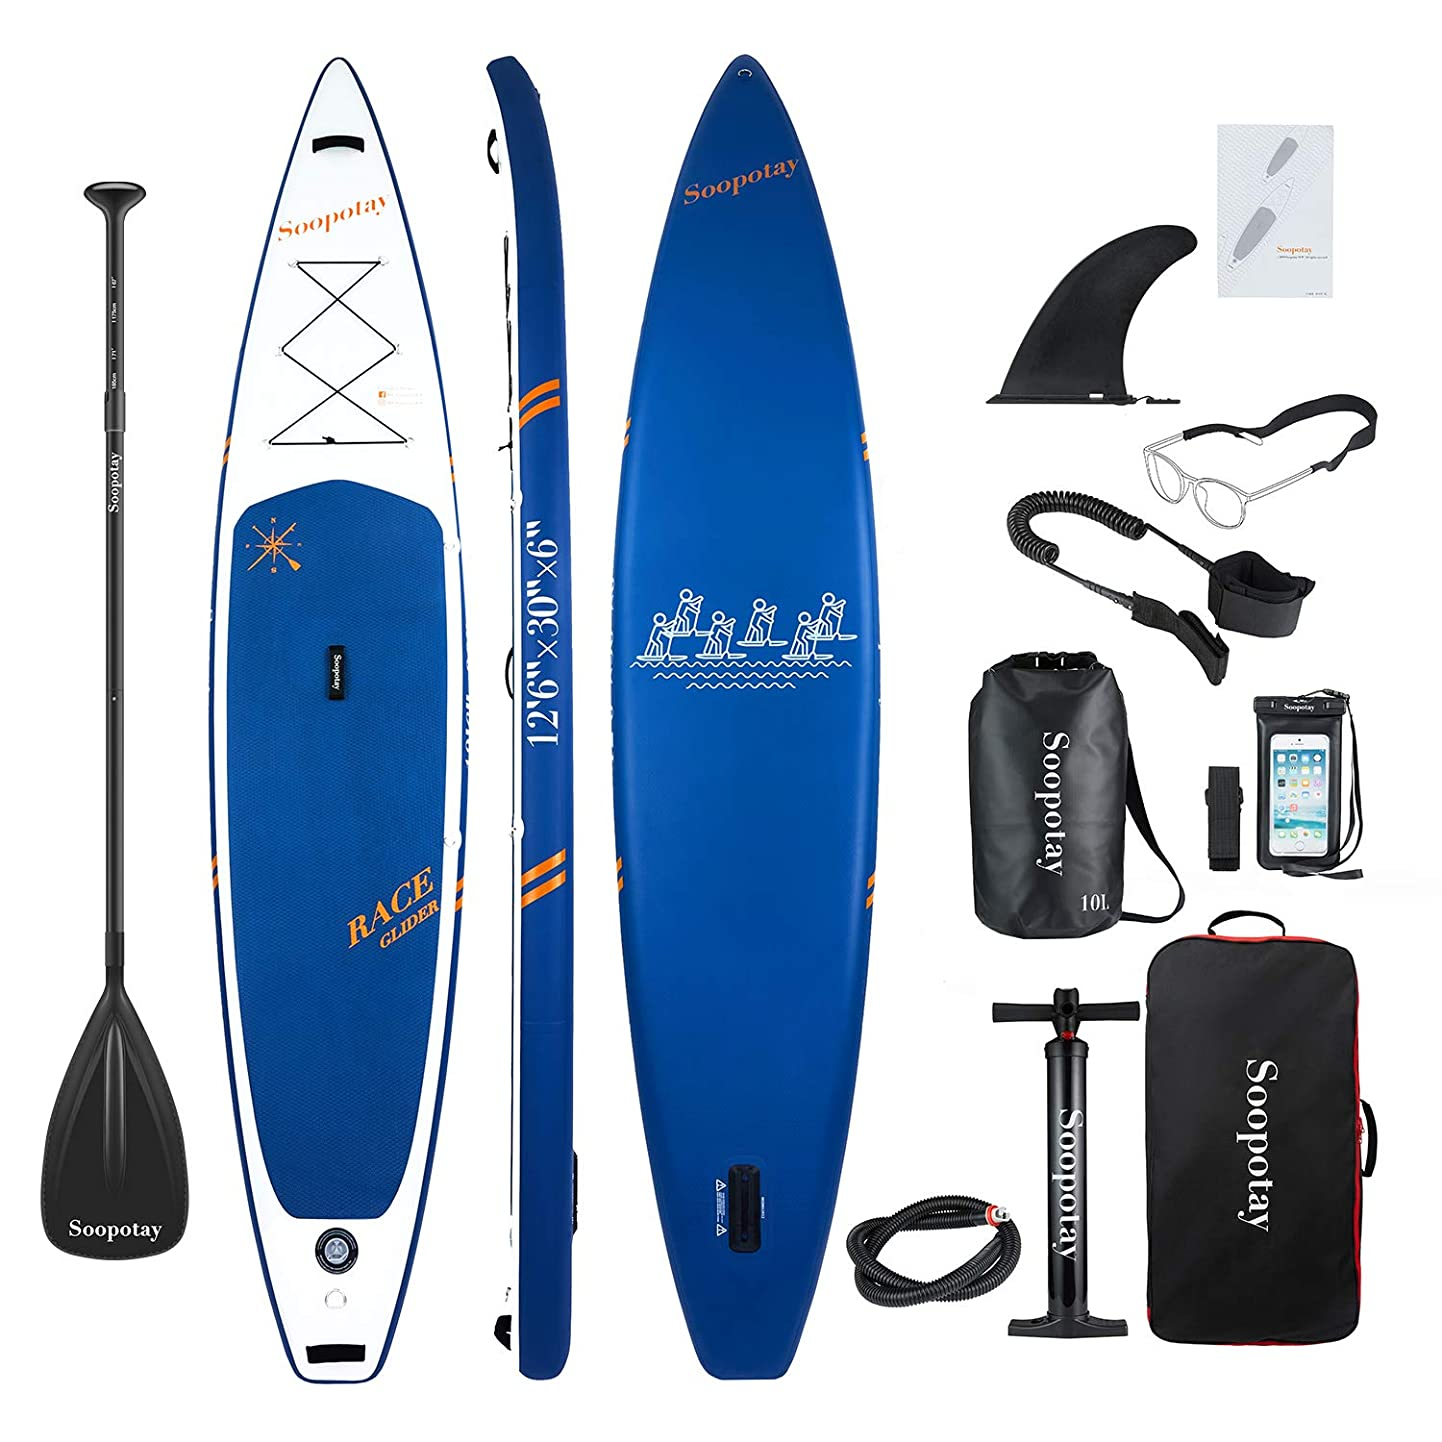 12'6'' Inflatable SUP Stand Up Paddle Board, Inflatable SUP Board 12'6'' x 30'' x 6'',iSUP Board Package with All Acessories efwivuhuezz1